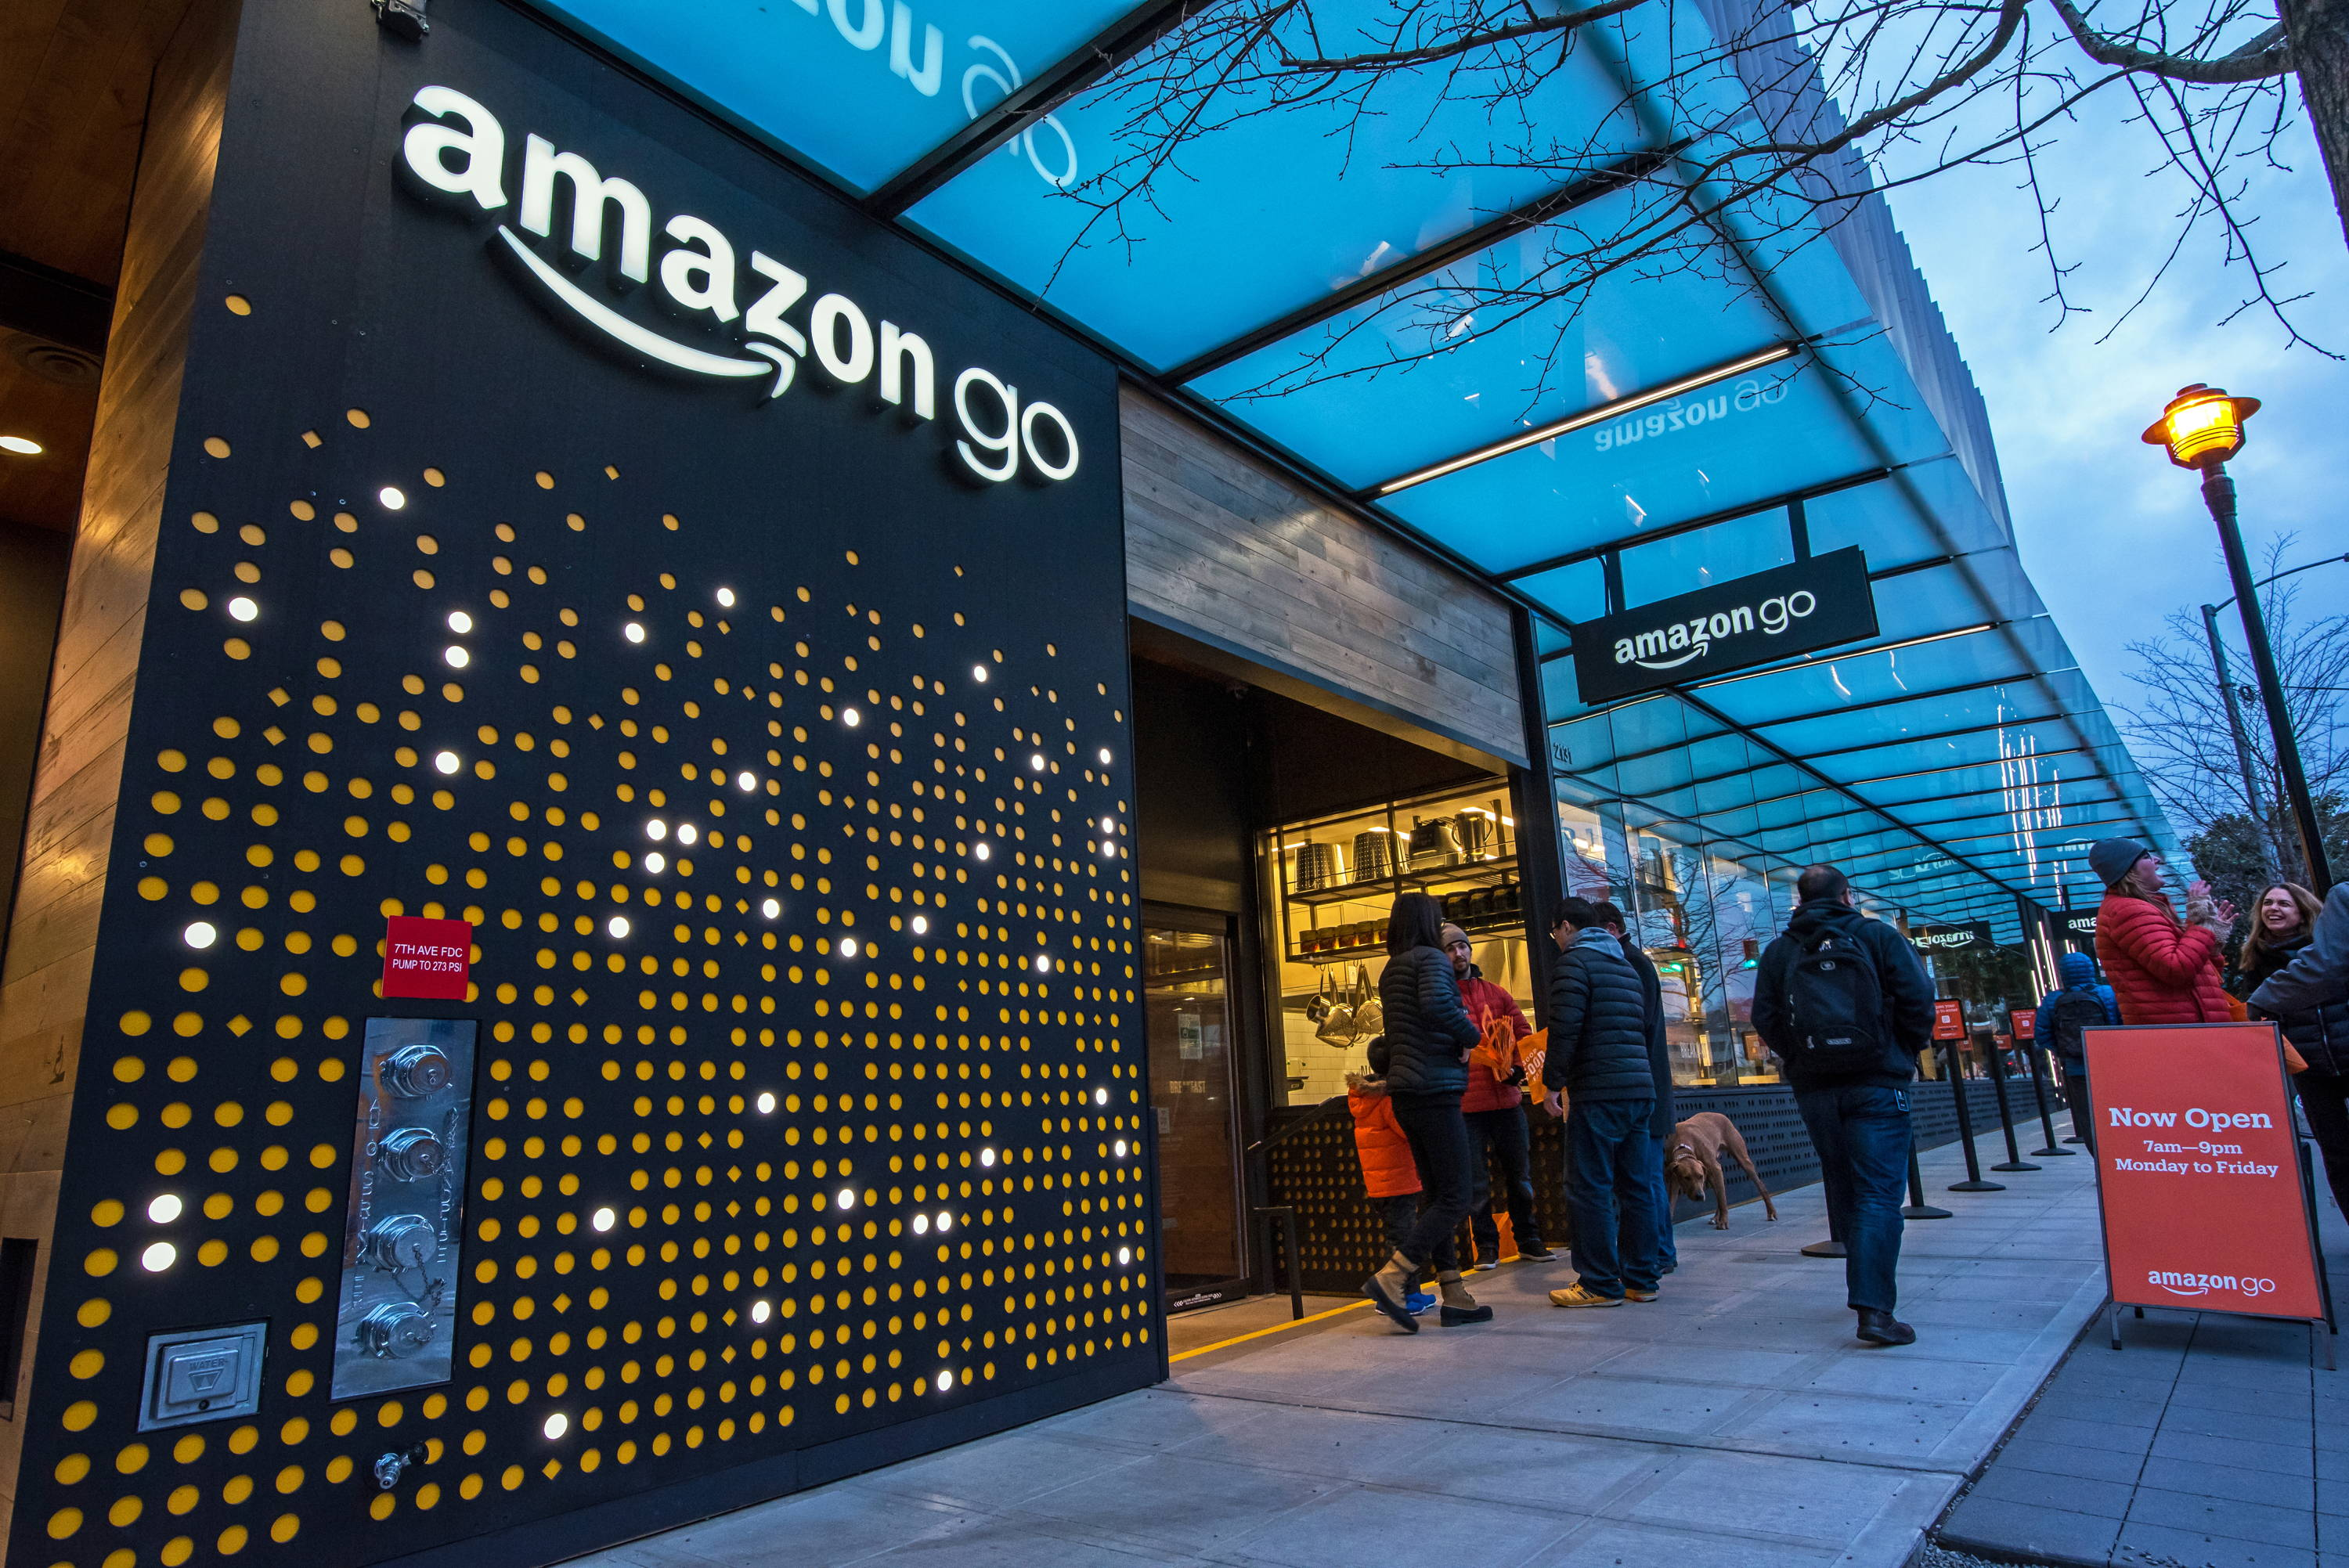 Amazon go building